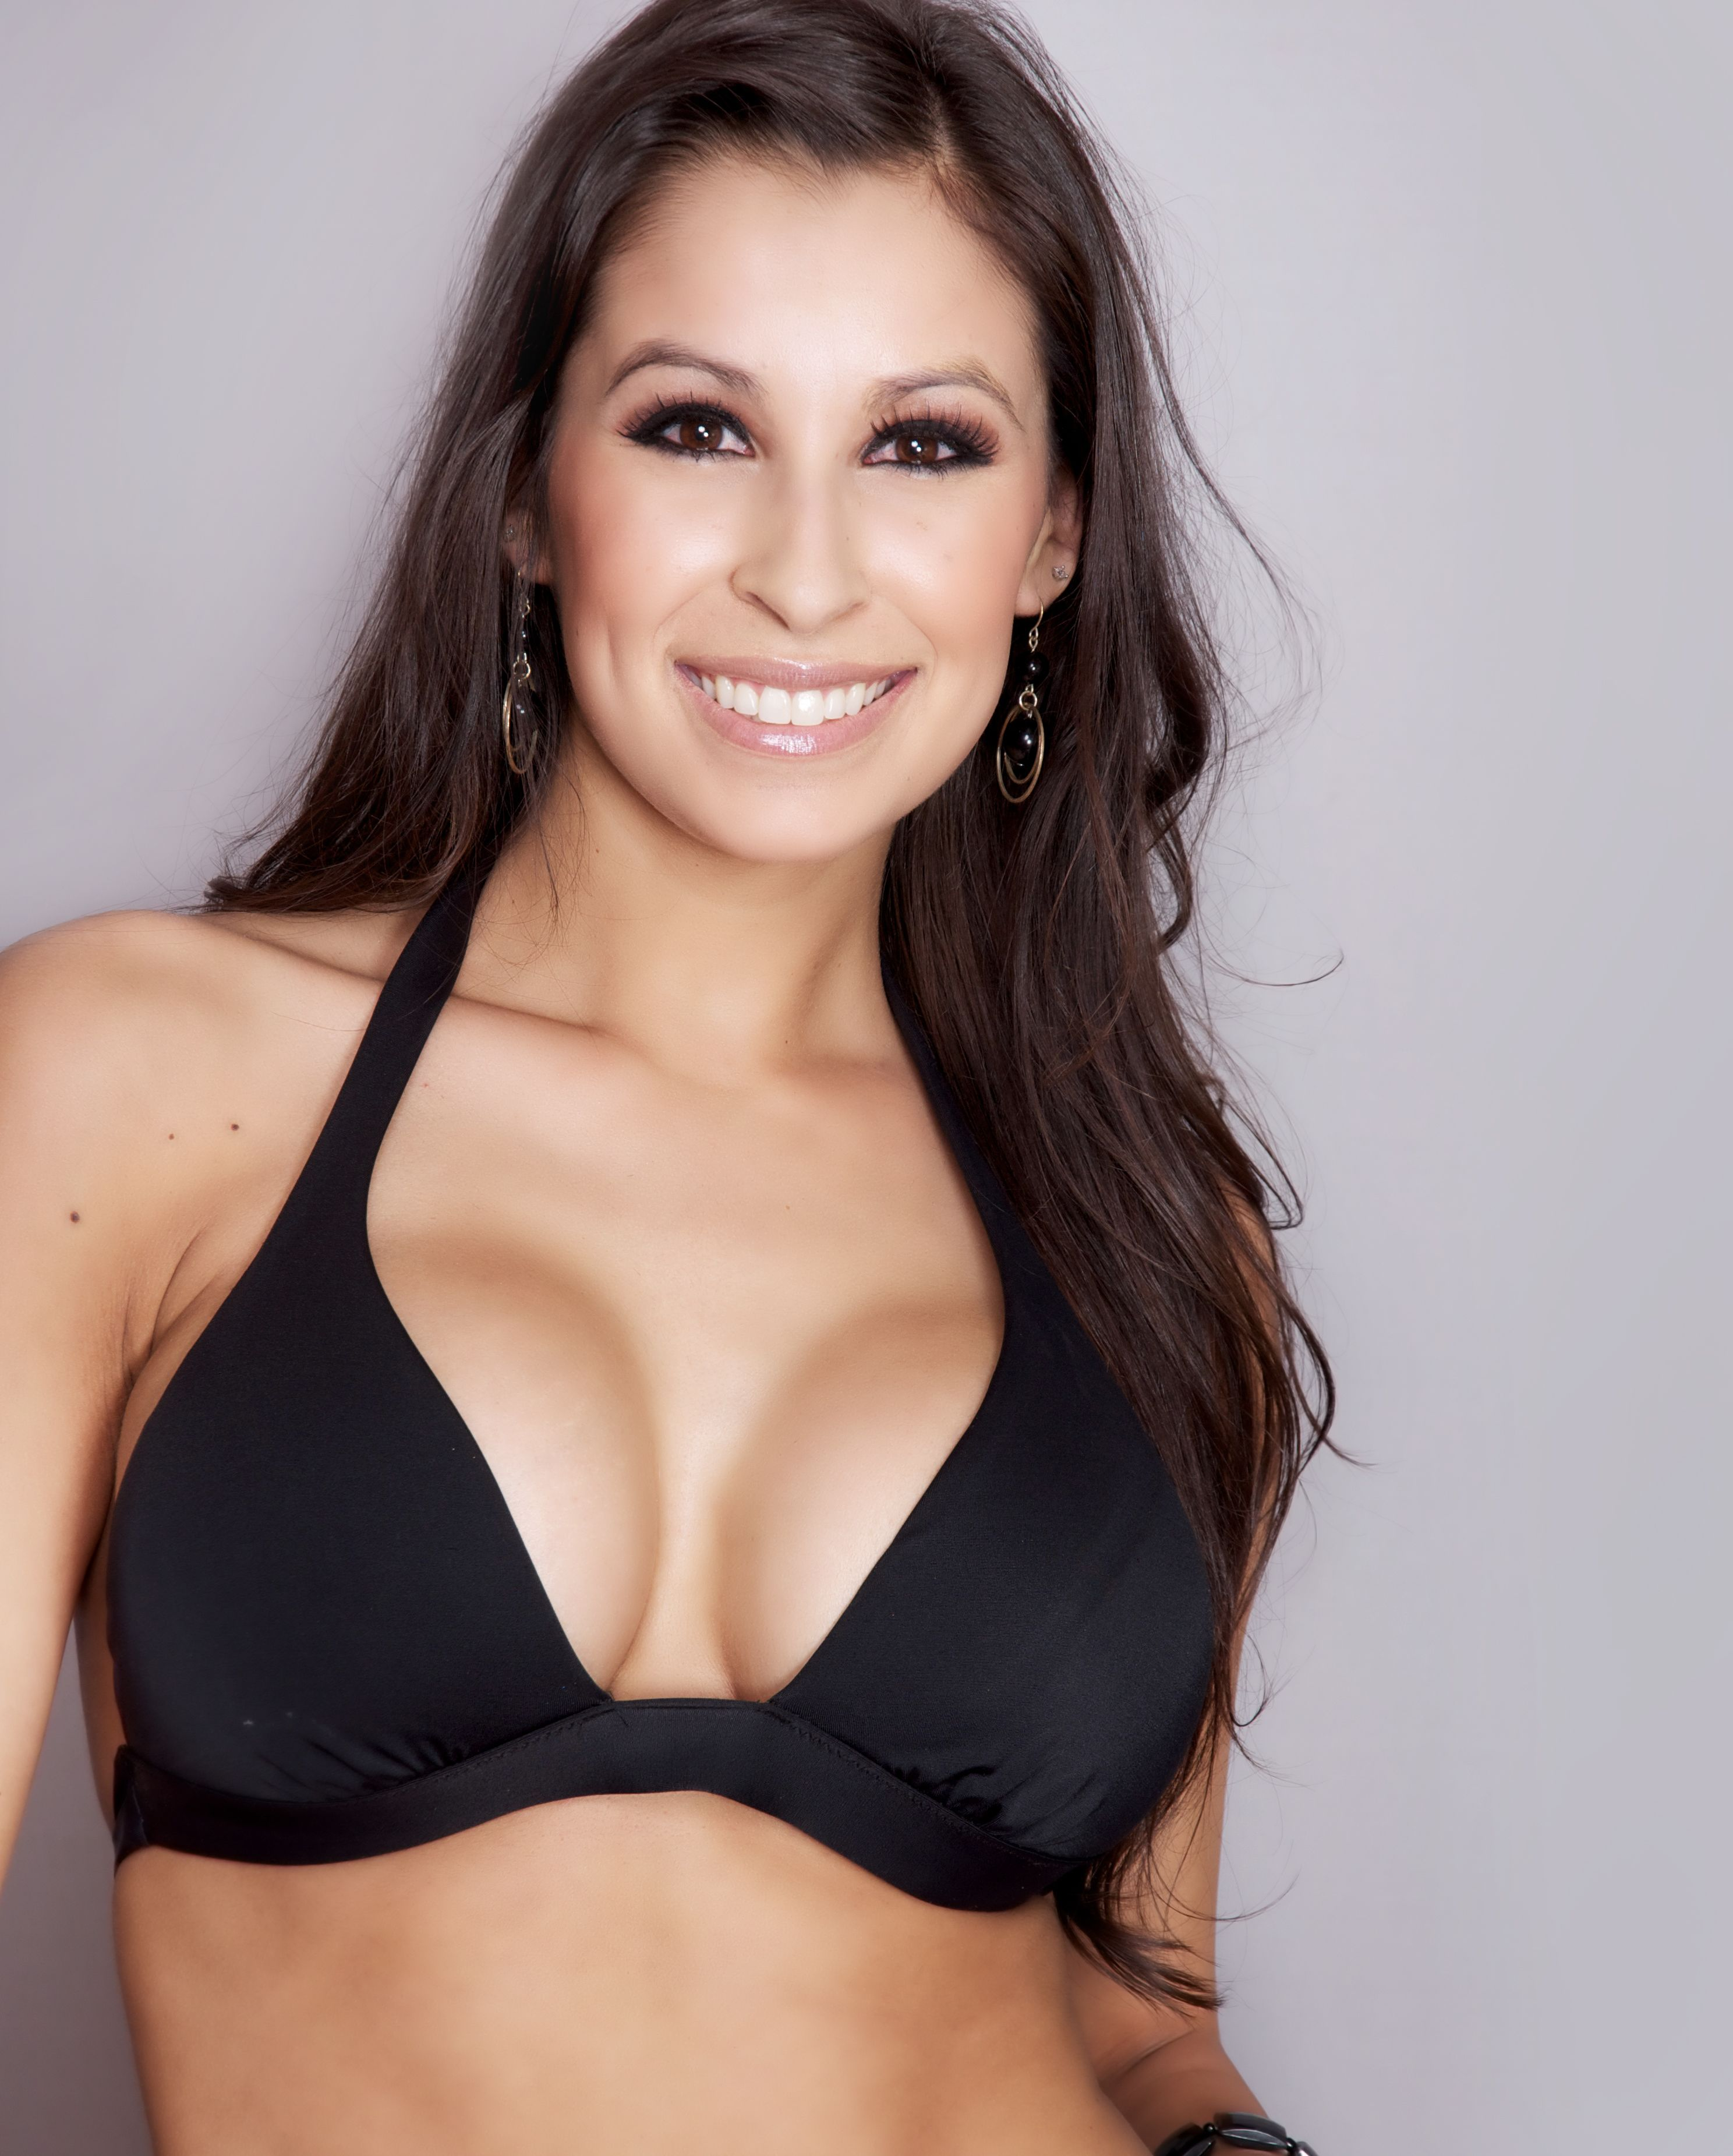 Smiling brunette in black bikini top with large, voluptuous breasts